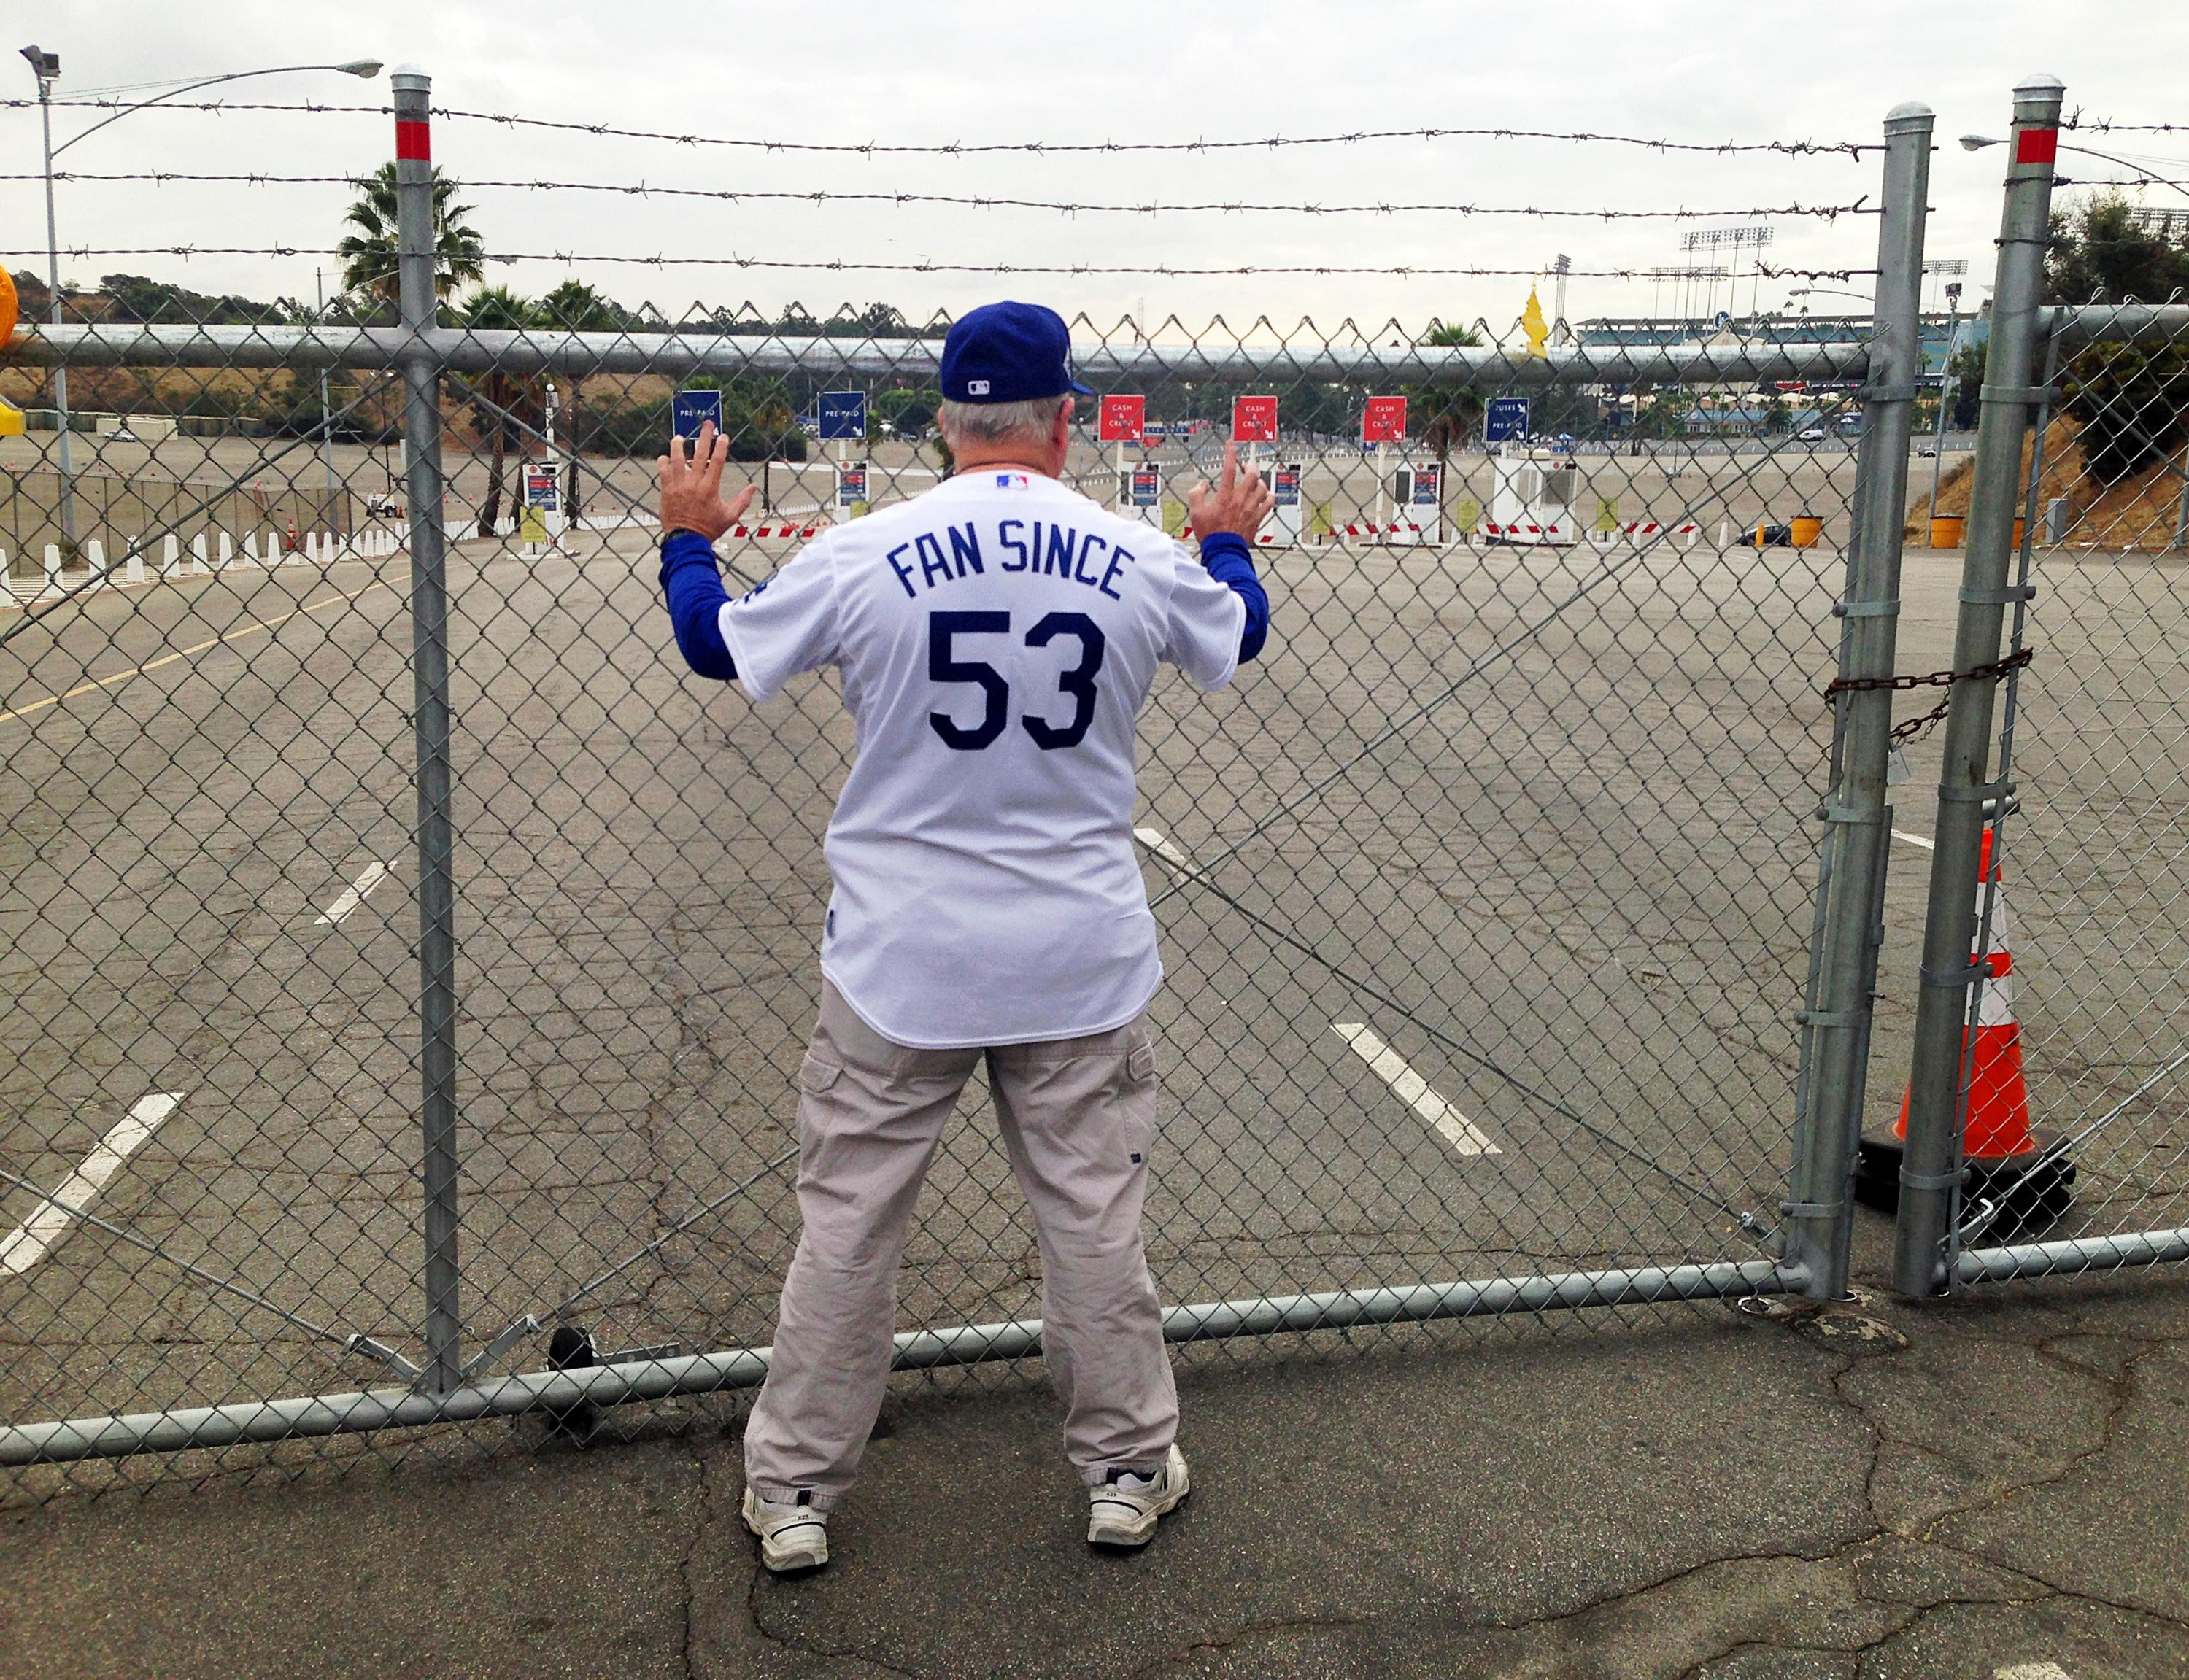 "Ron Cervenka stands in front of an entrance gate to Dodger Stadium some eight hours before game time, waiting to be the first person inside for World Series Game 7 between the Dodgers and the Houston Astros Wednesday, Nov. 1, 2017. ""I knew this team was special, even in spring training,"" said the retired police detective, who saw his first World Series game in 1963, watching as Dodgers Hall of Fame pitcher Don Drysdale shut out the Yankees 1-0 on a three-hitter. His jersey refers to his birth year, 1953. (AP Photo/John Rogers)"